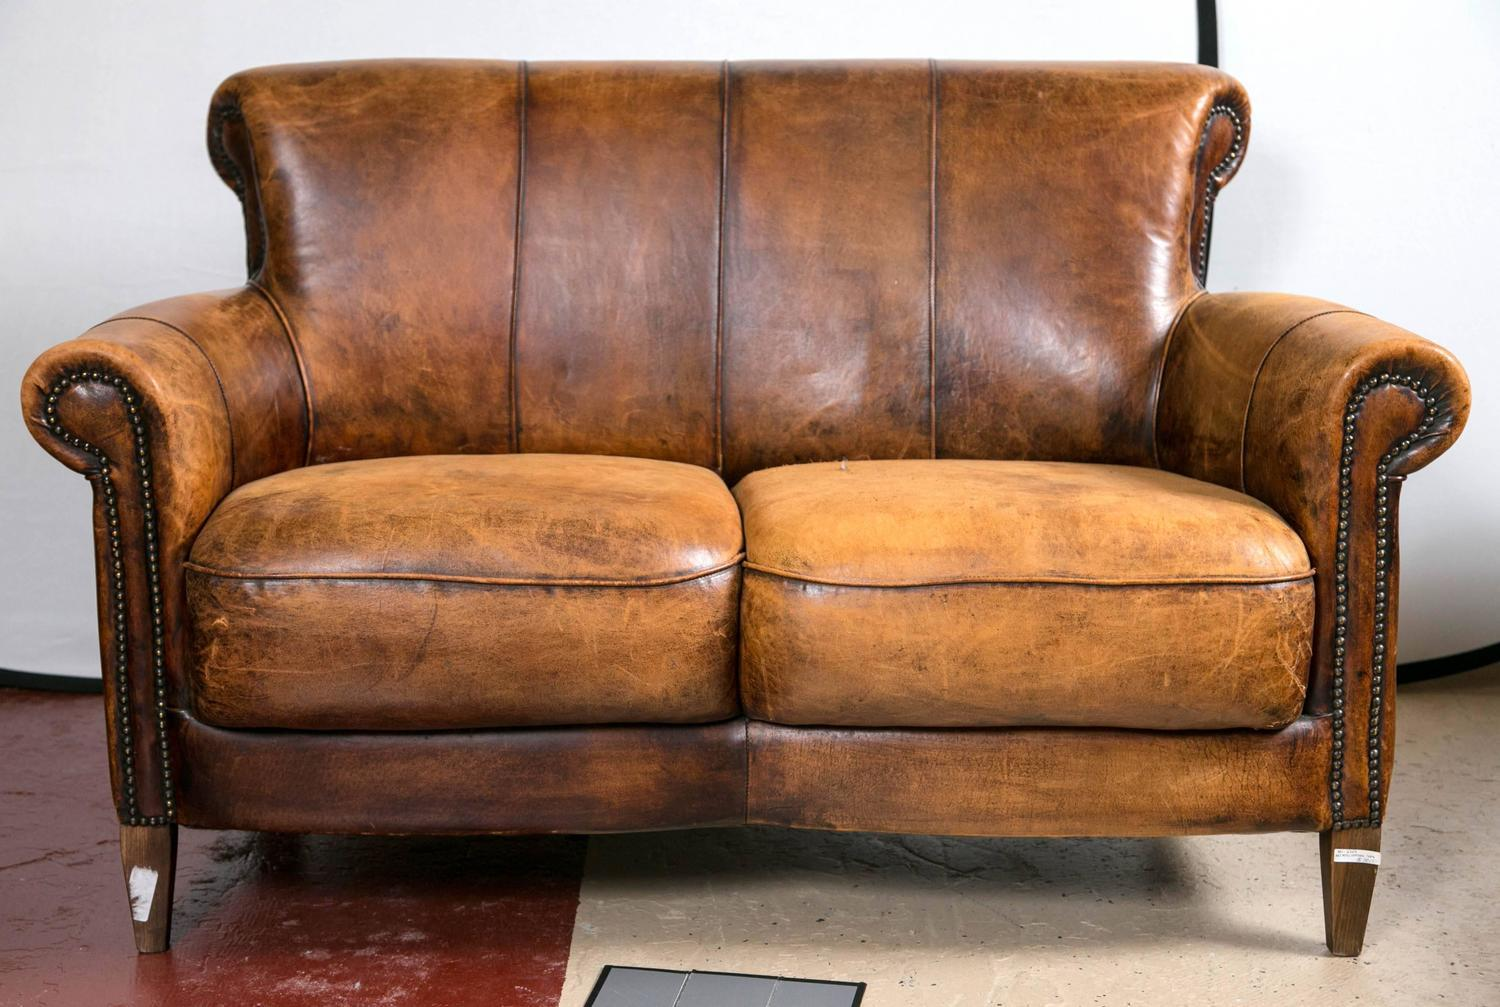 Vintage French Distressed Art Deco Leather Sofa : Chairish